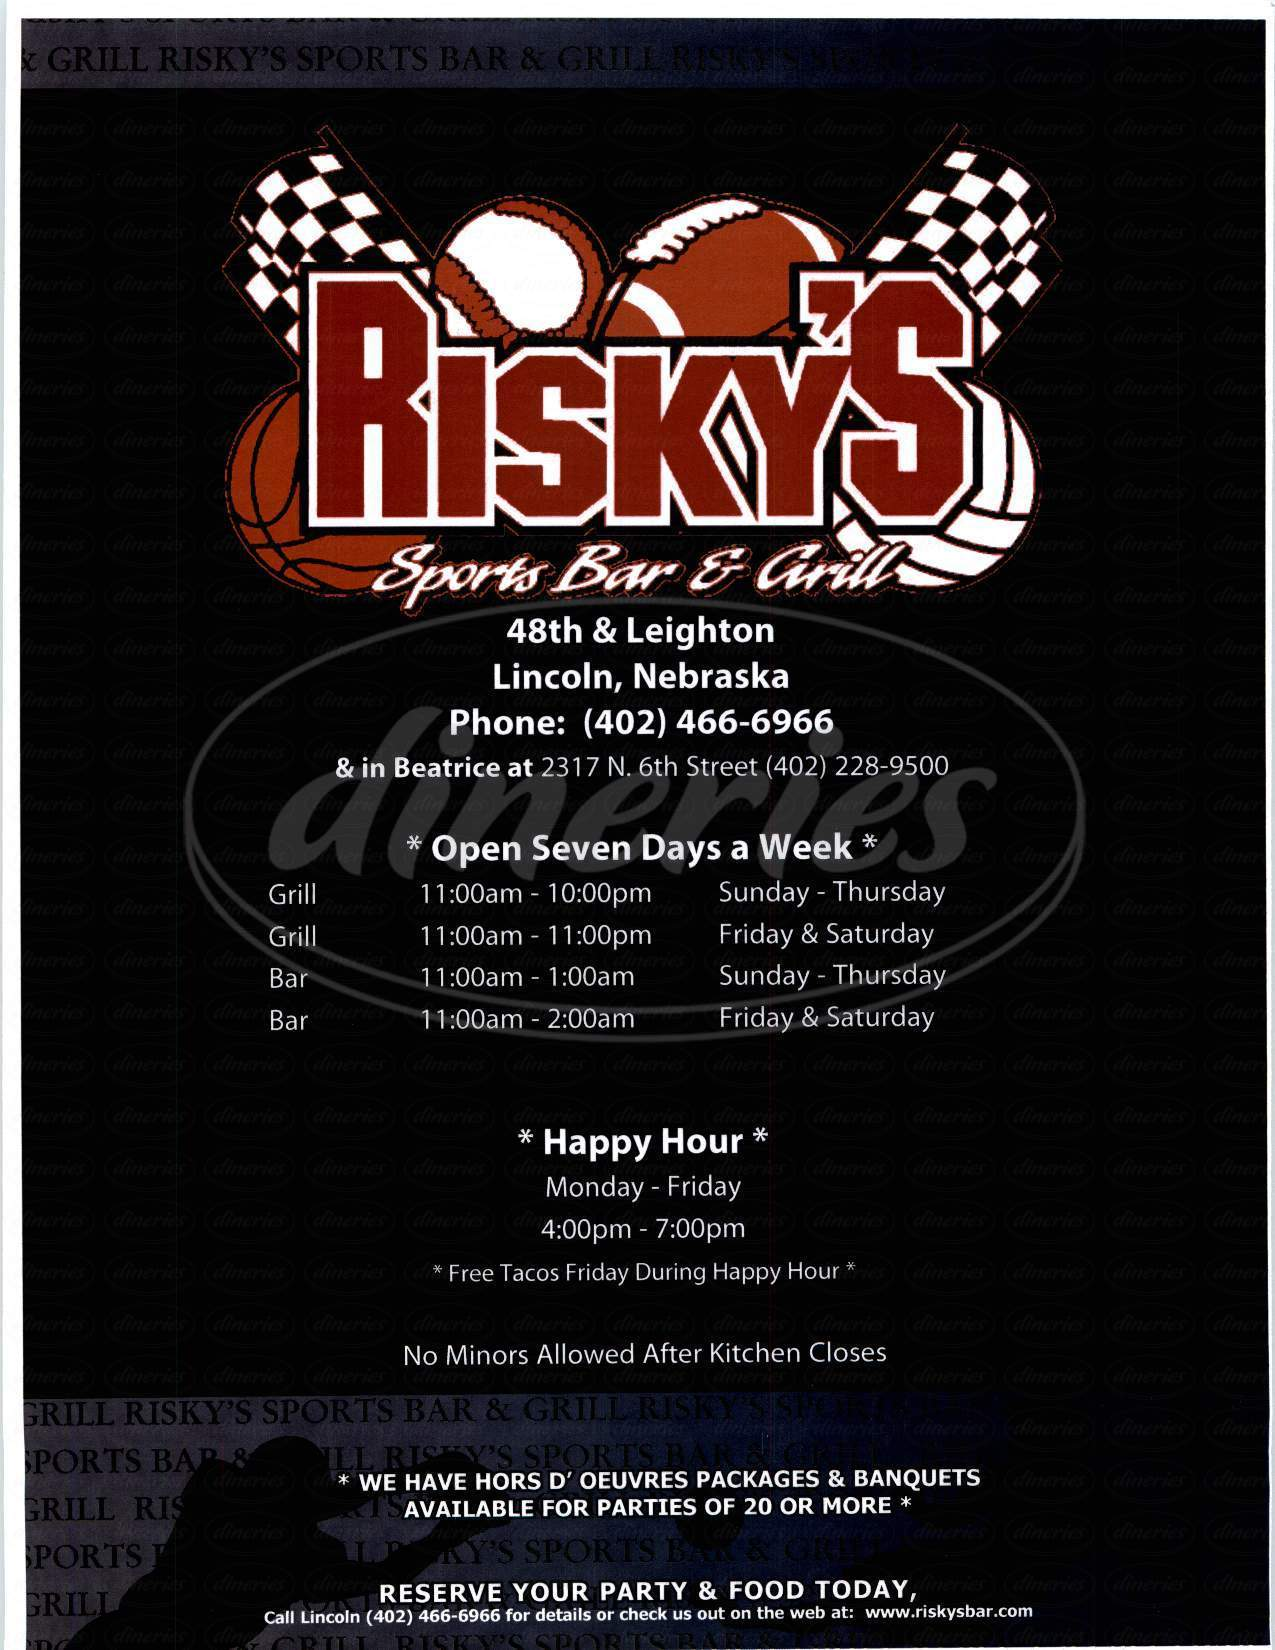 menu for Risky's Sports Bar & Grill